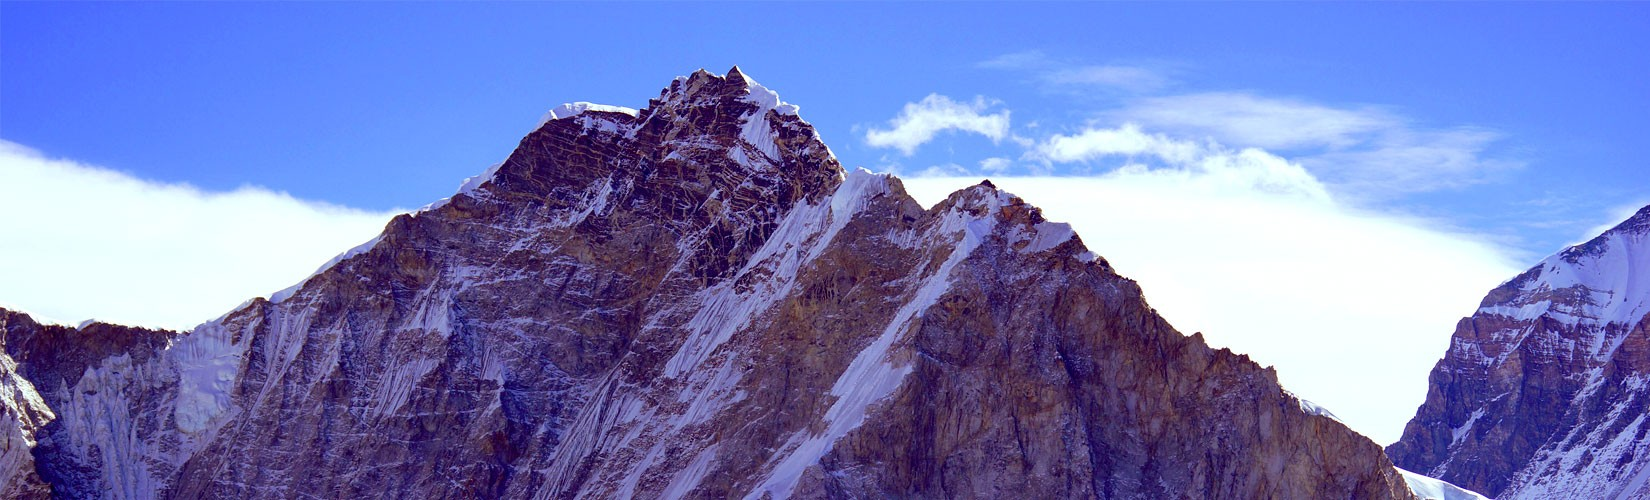 Everest Region Trekking is the first home for any trekker of the world. No trekking is complete without experiencing Everest Region as this place has many mountians including world's highest peak- Mount Everest. Besides mountians, the region has many othe